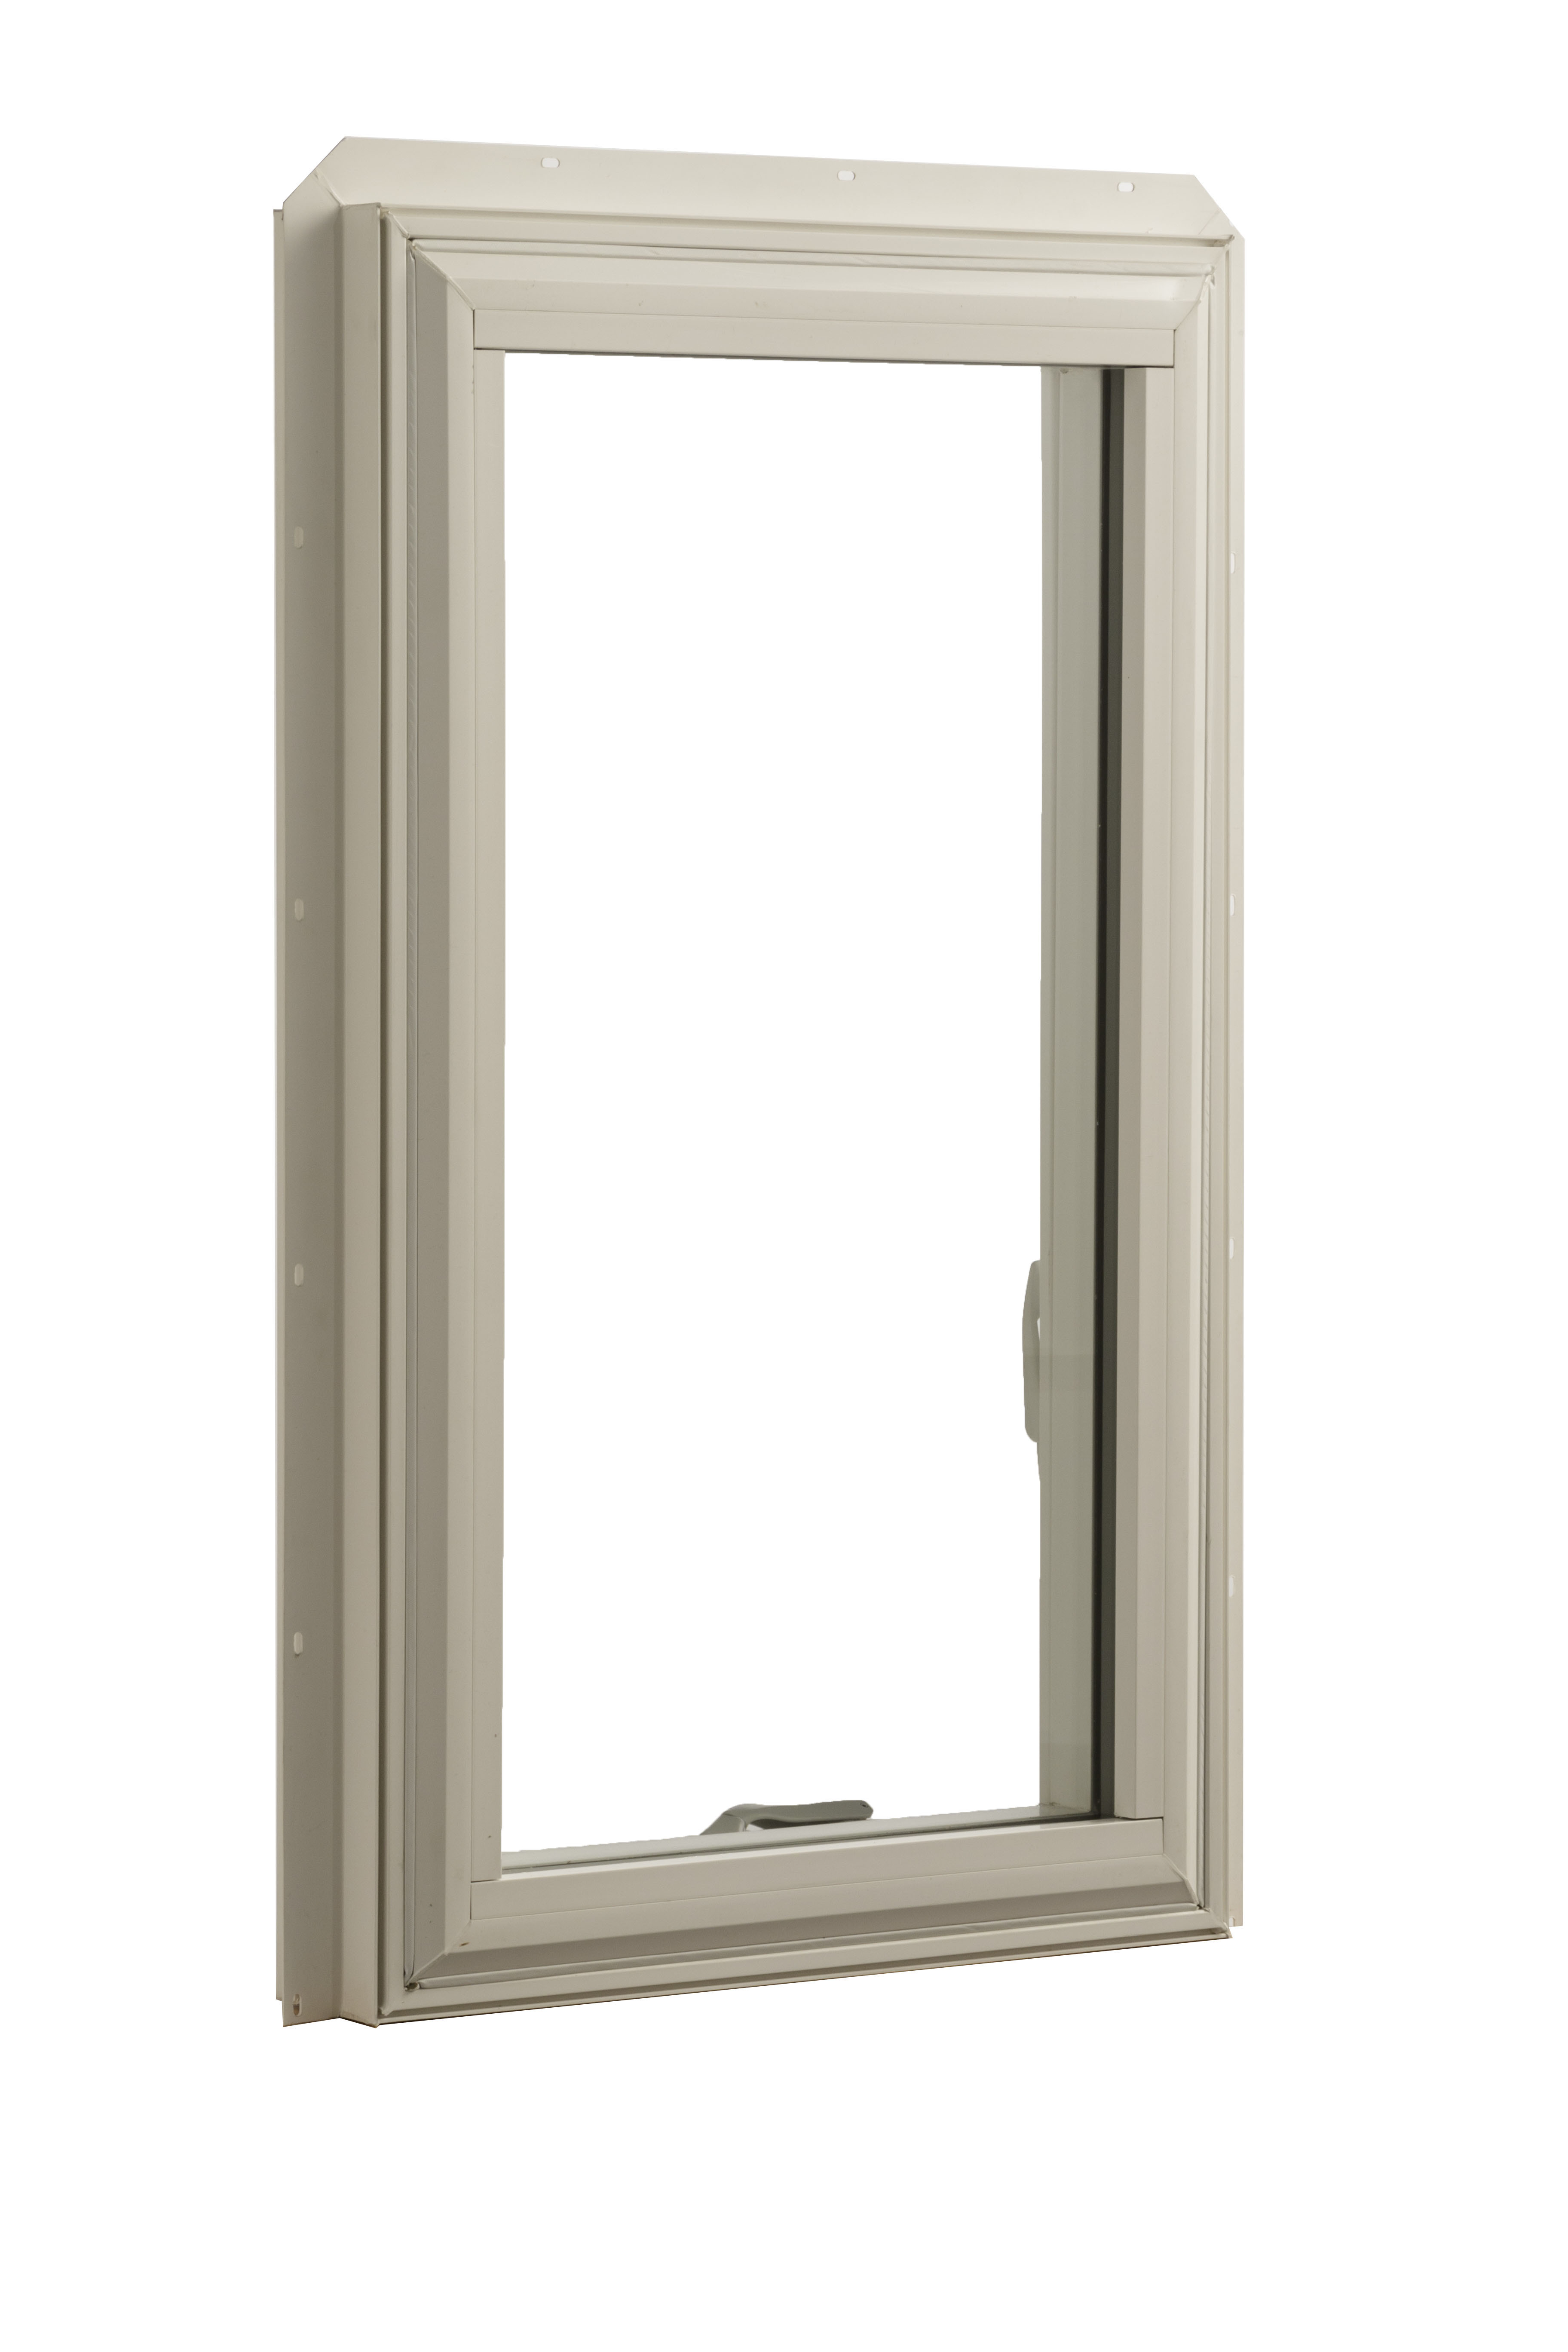 Full view exterior french doors with screens for Full view exterior door